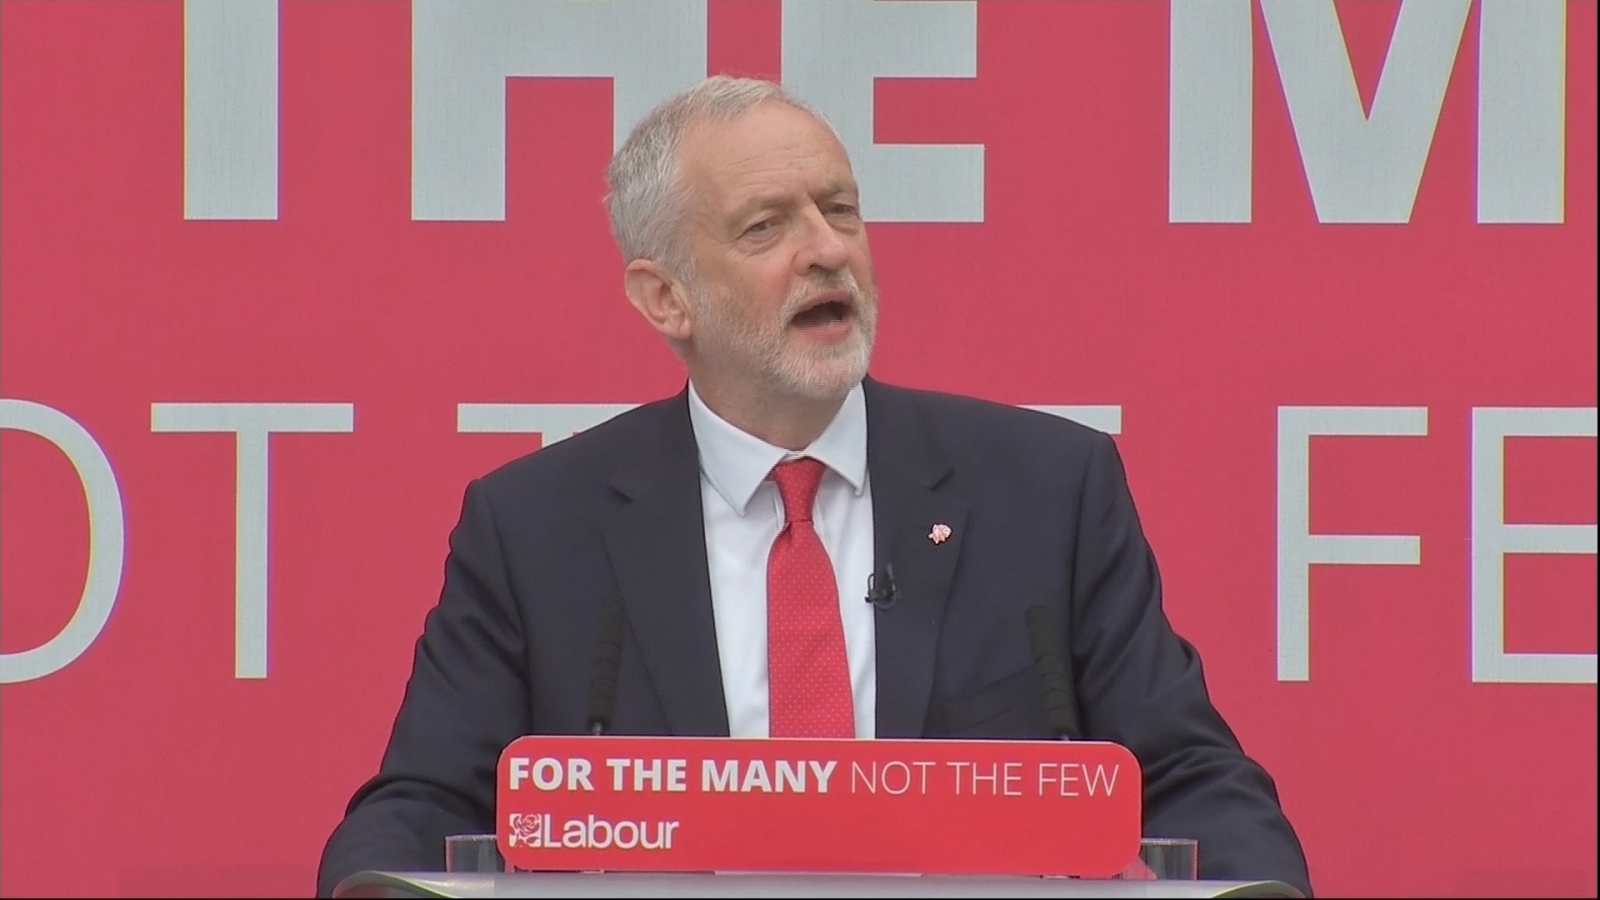 jeremy-corbyn-announces-labour-manifesto-for-uk-general-election